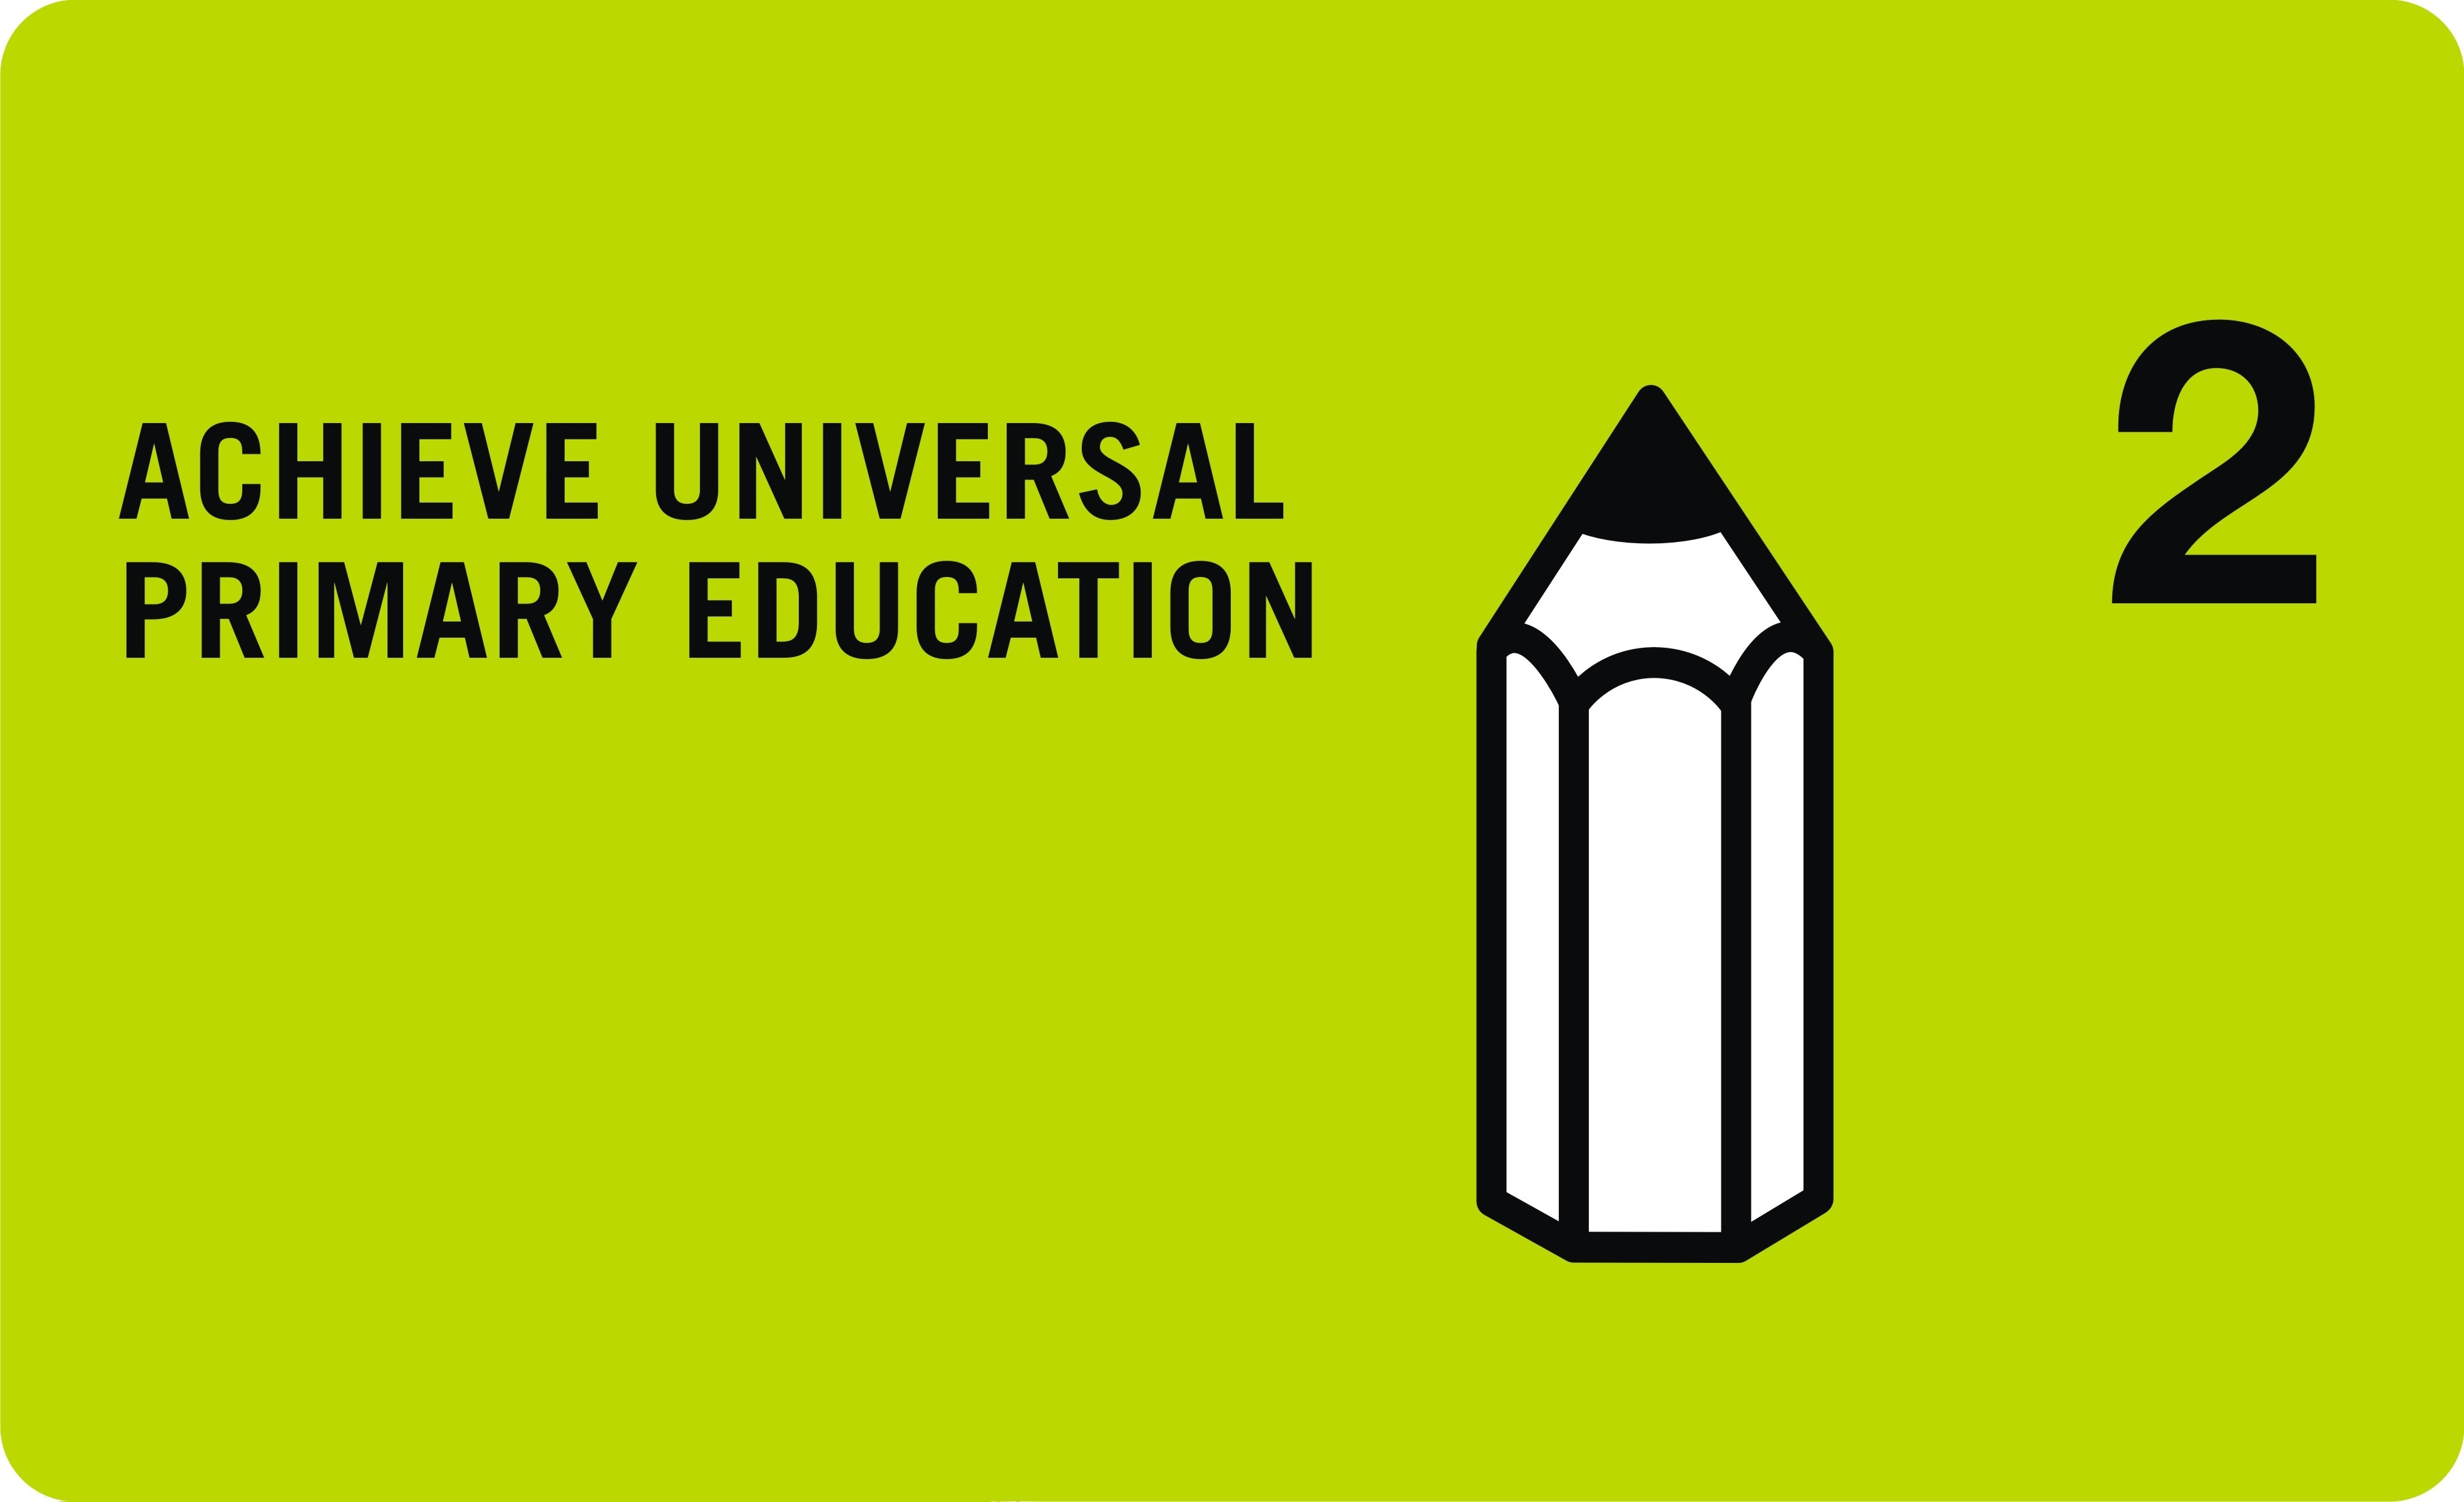 How to Help Achieve Universal Primary Education